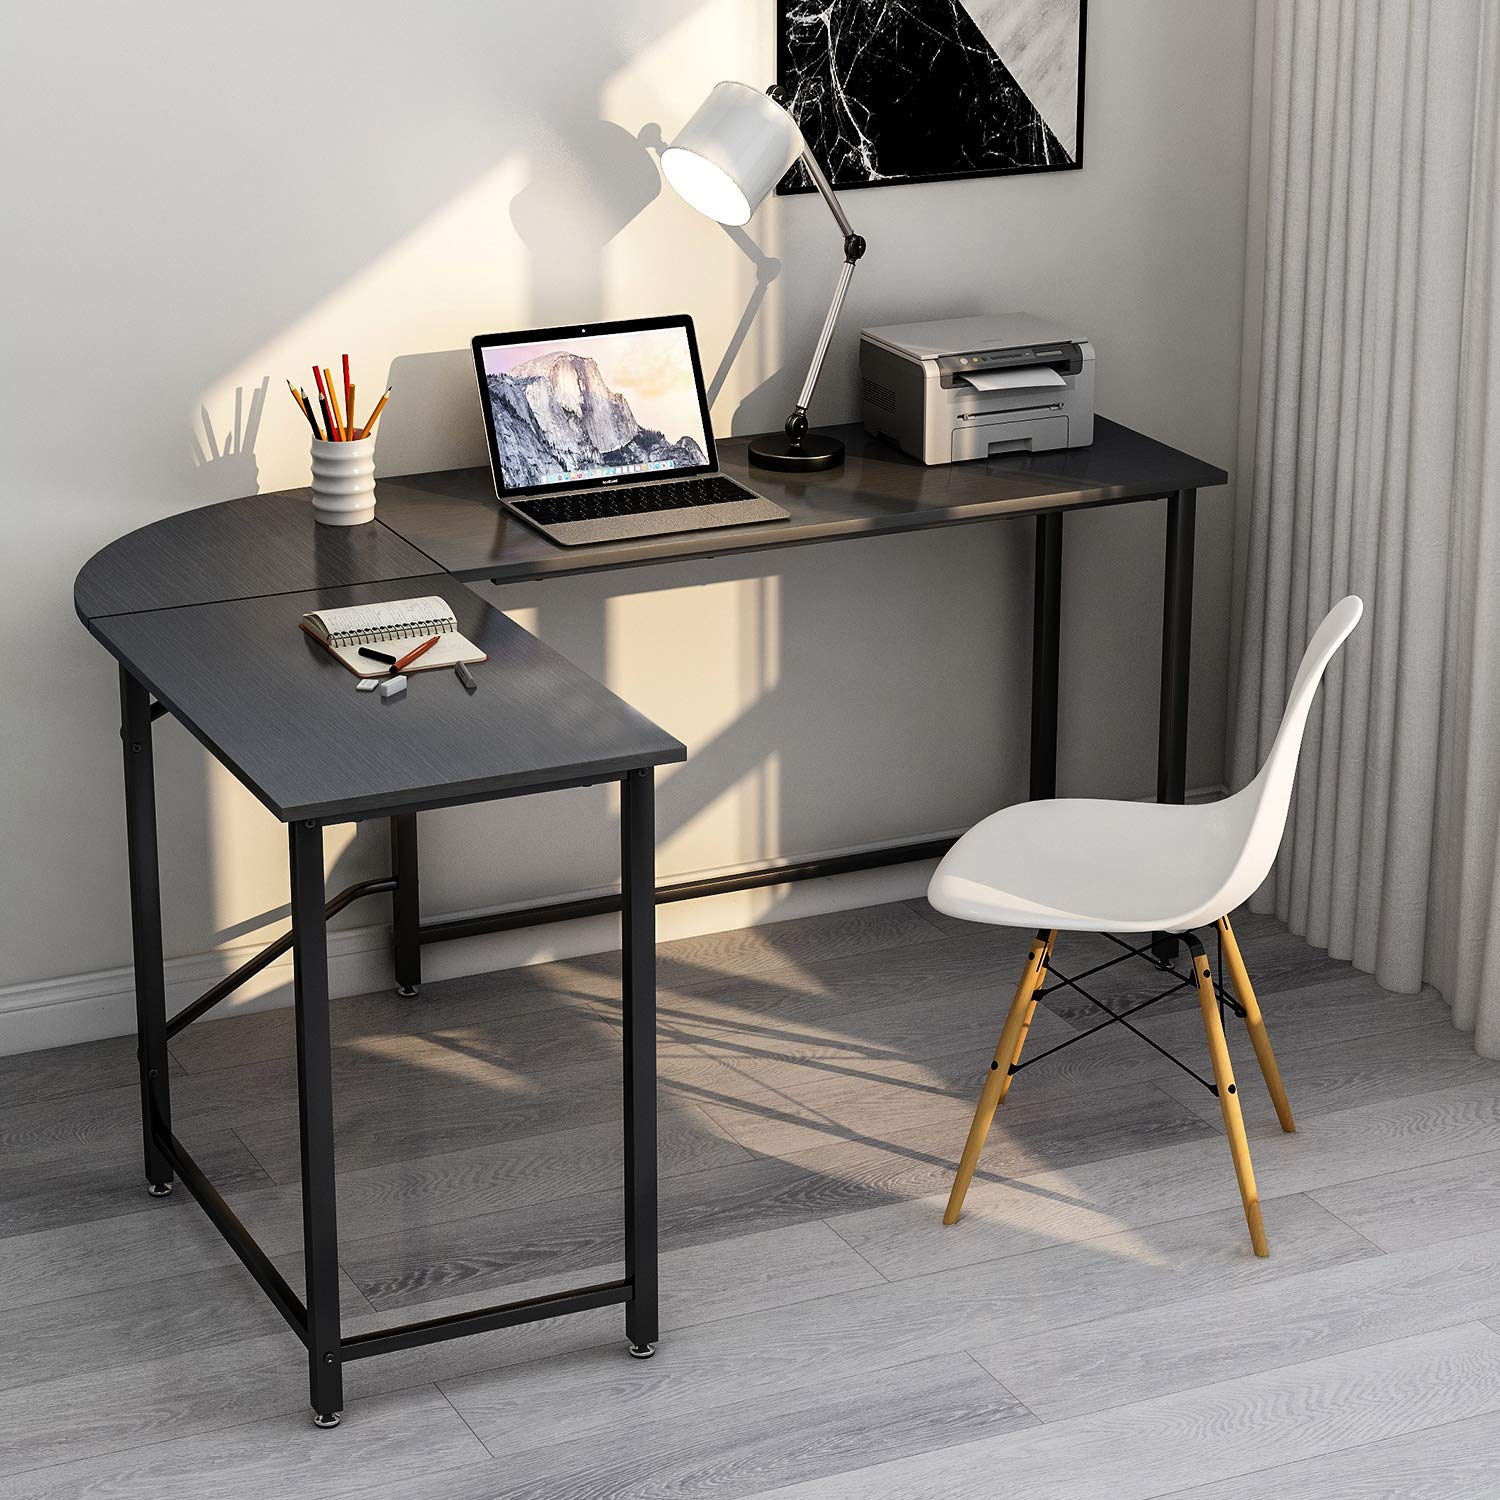 ModernLuxe WF036968BAA L-Shape Home Office Corner Computer Desk PC Laptop Table Workstation Wood Metal Black